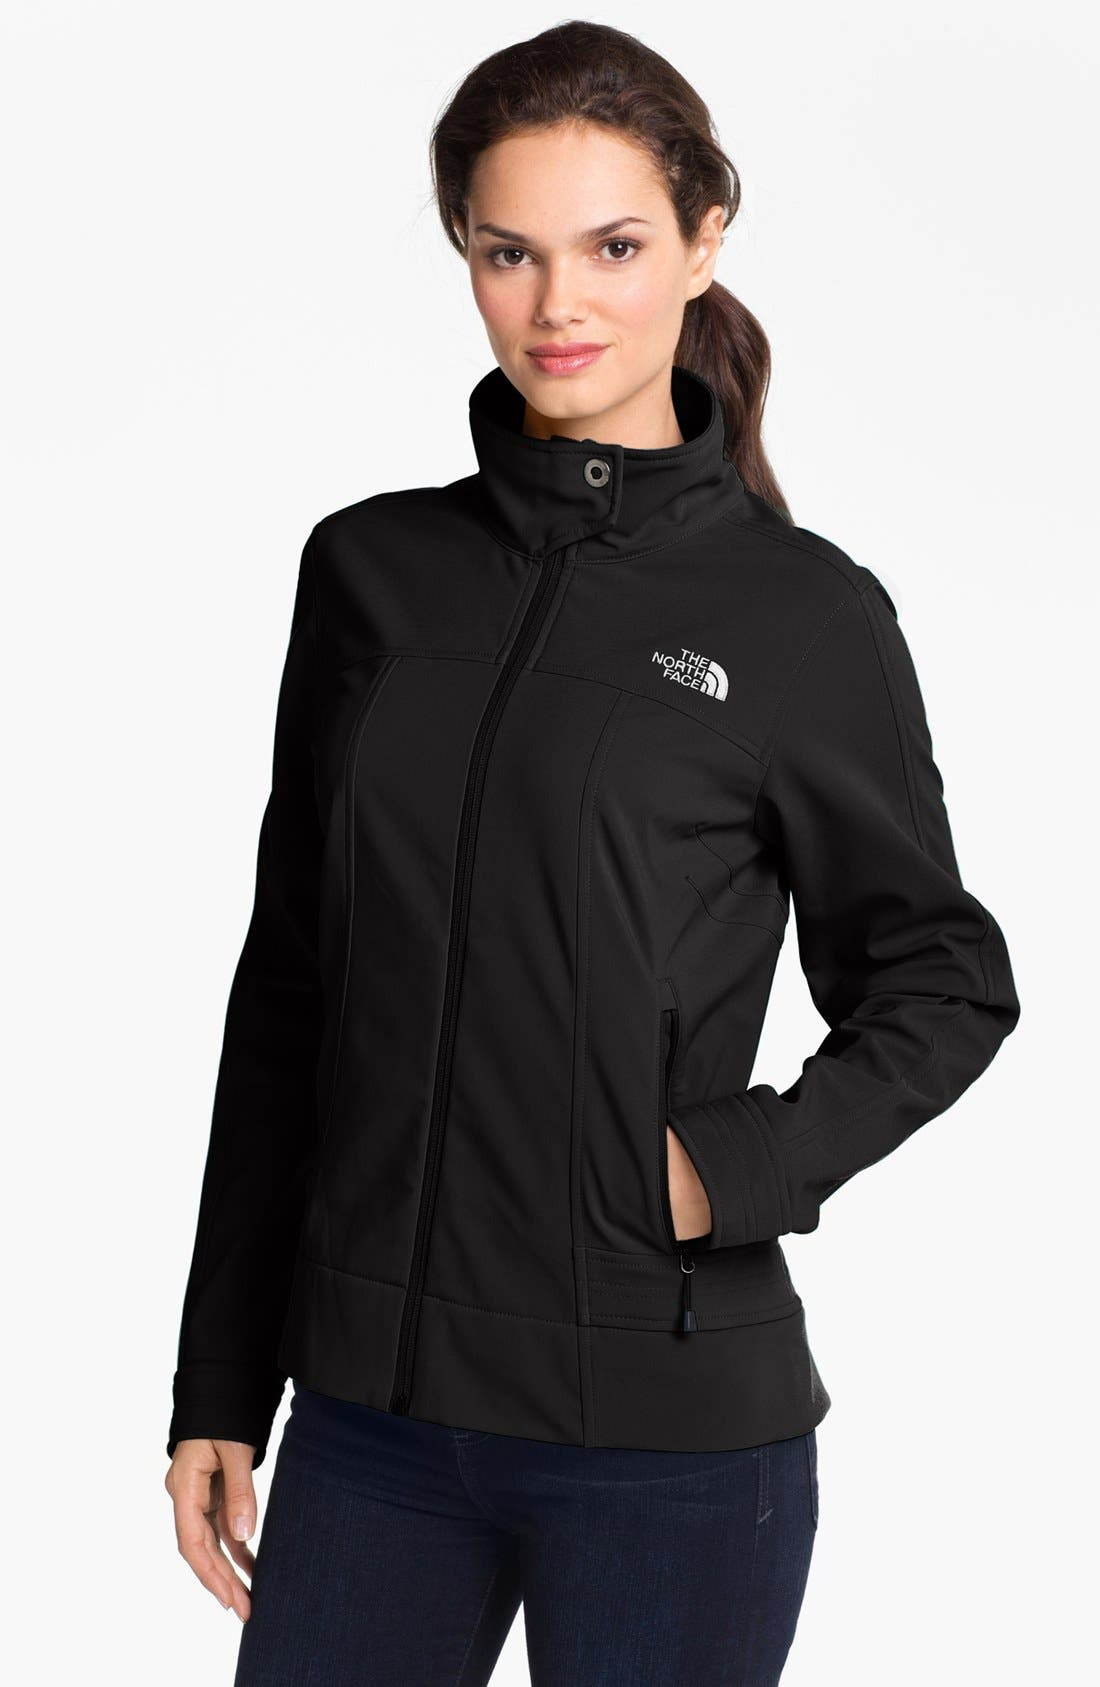 Main Image - The North Face 'Calentito' Soft Shell Jacket